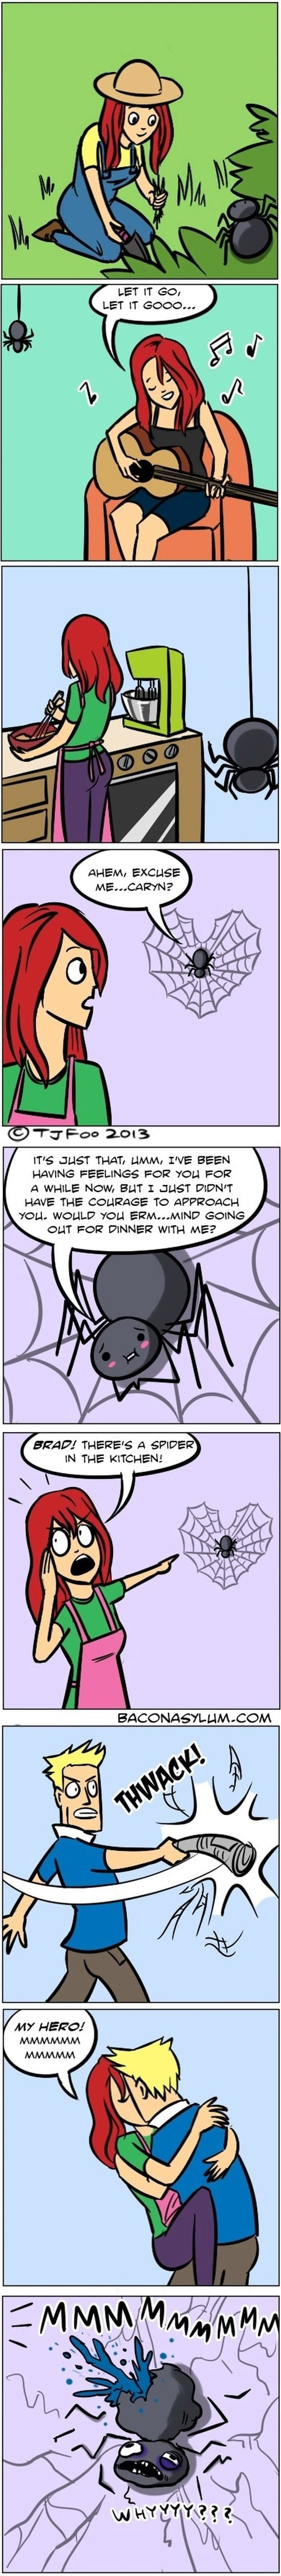 spider-confession-funny-meme-and-gif